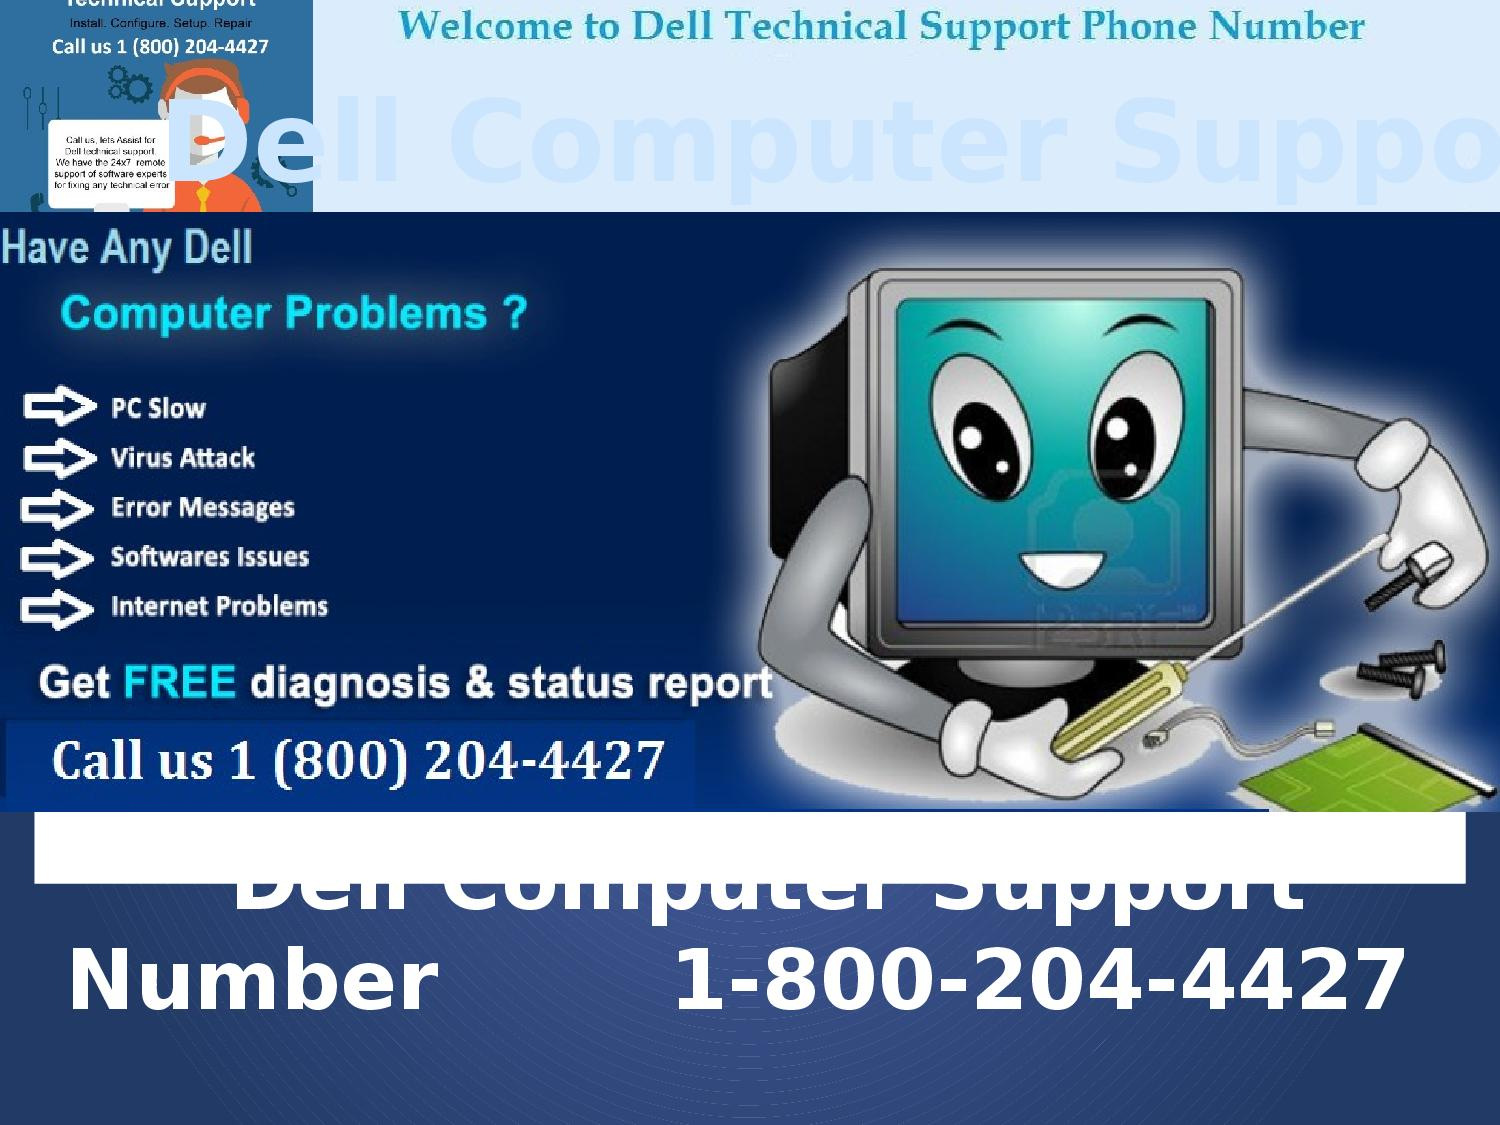 DELL US 1 800-204-4427 dell Computer support phone number